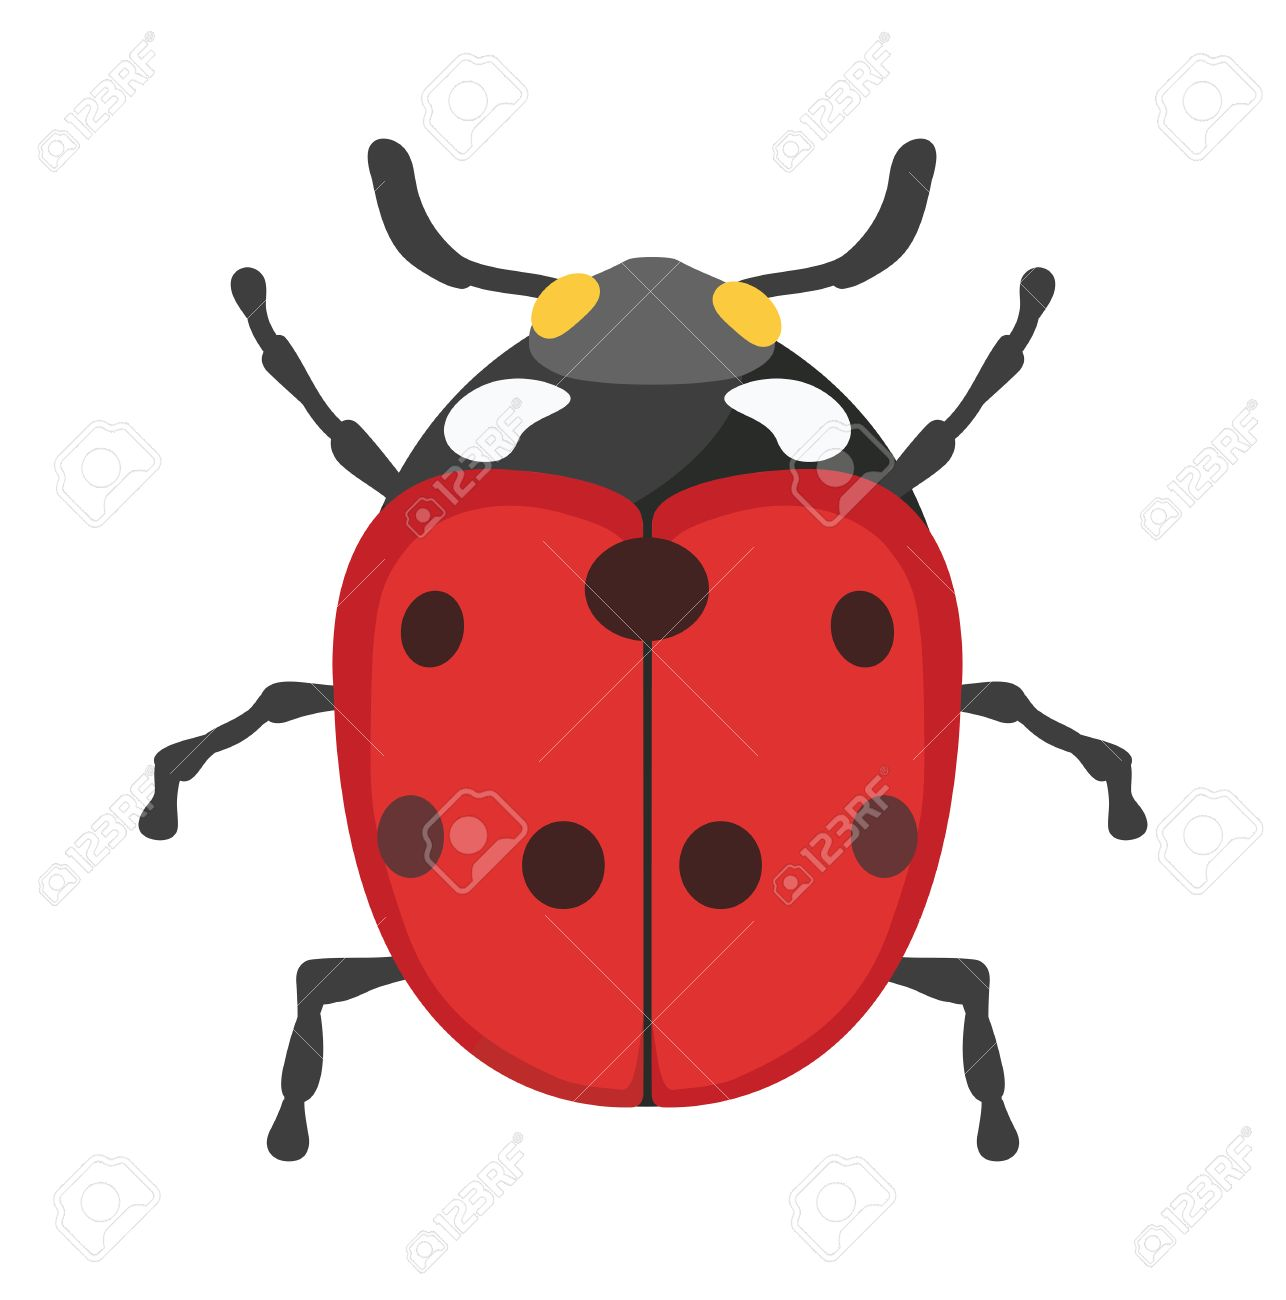 1286x1300 Ladybug Vector Insect Isolated On White Background. Flat Red